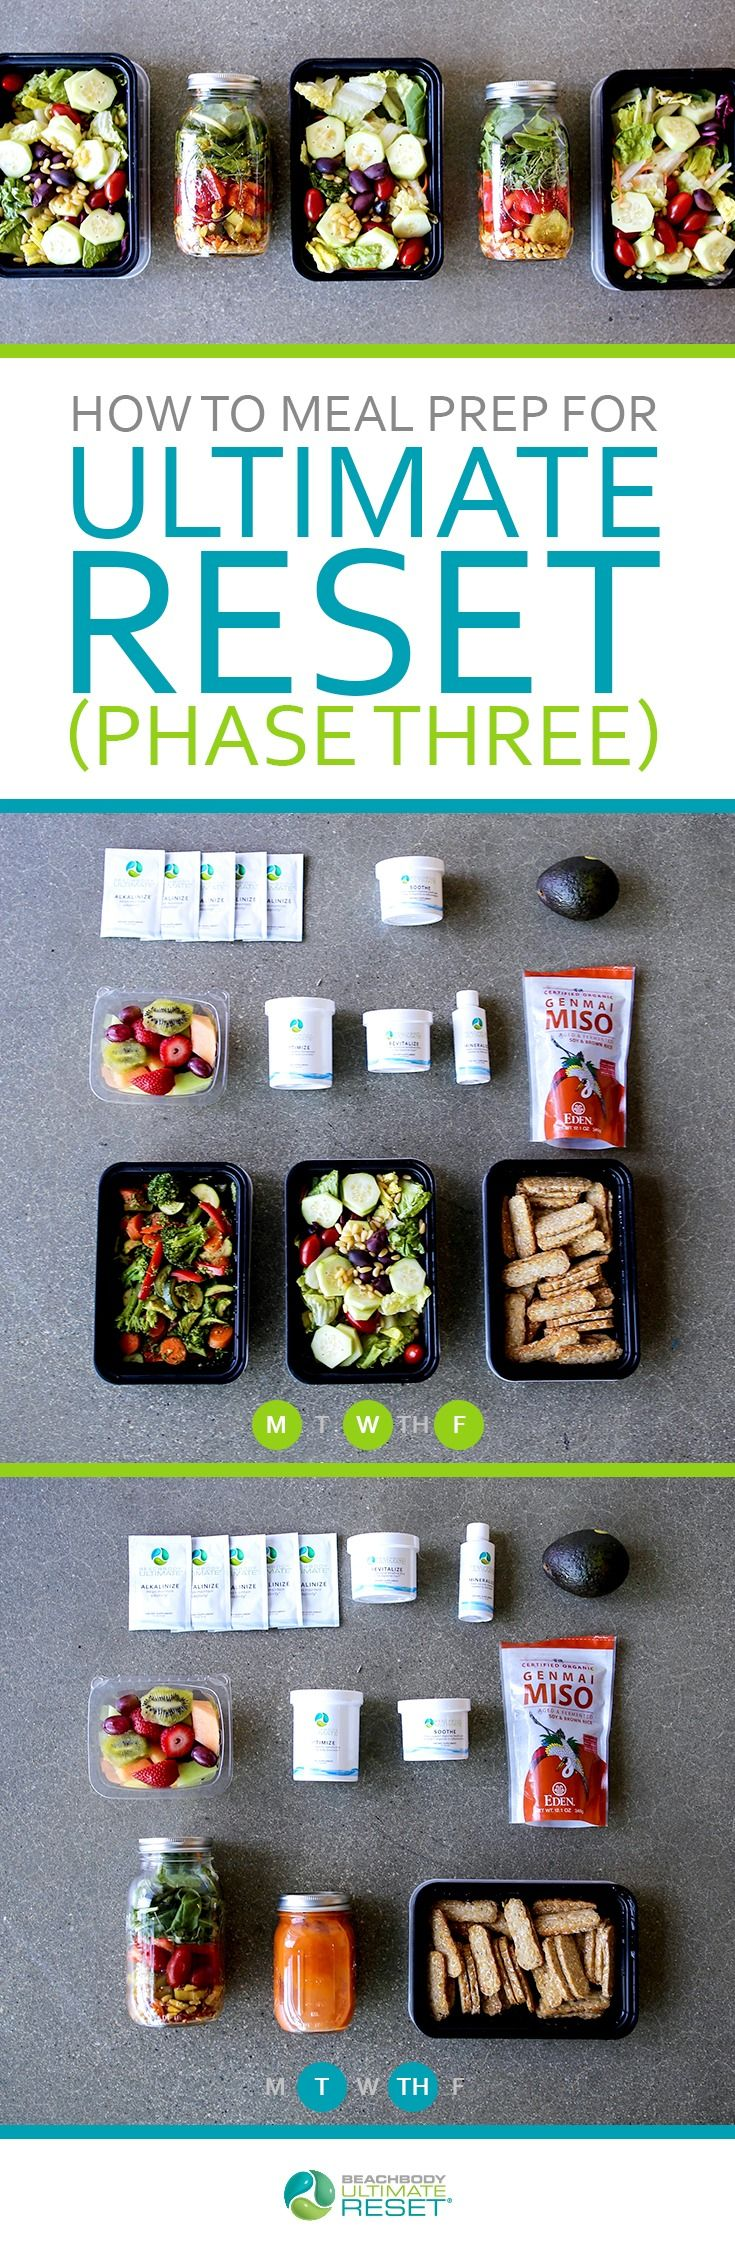 In Phase Three of the Ultimate Reset, you'll refine your diet by cutting back on grains and eating mainly fruits and vegetables. This guide will help you make your meals for the next five days. #mealprep #mealplanning #ultimatereset